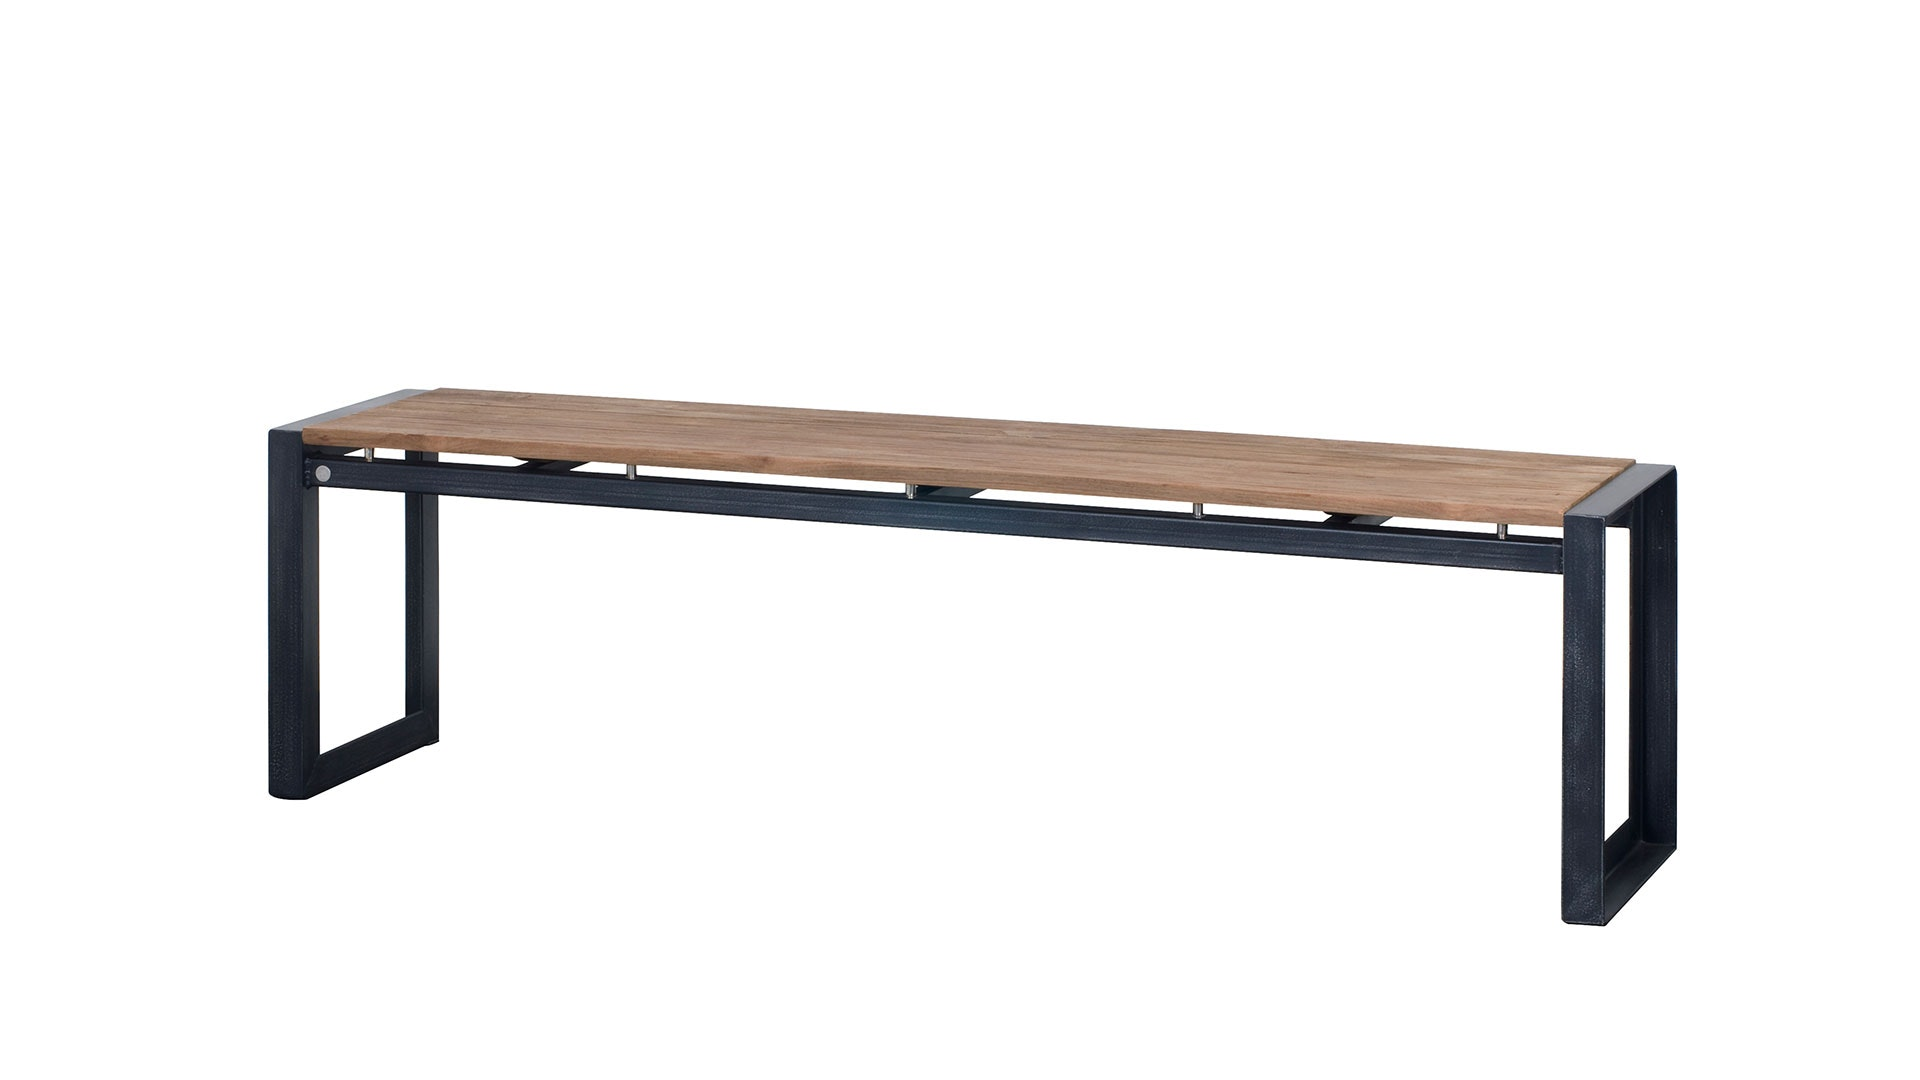 Fendy 1650mm Bench Seat by D-Bodhi Furniture